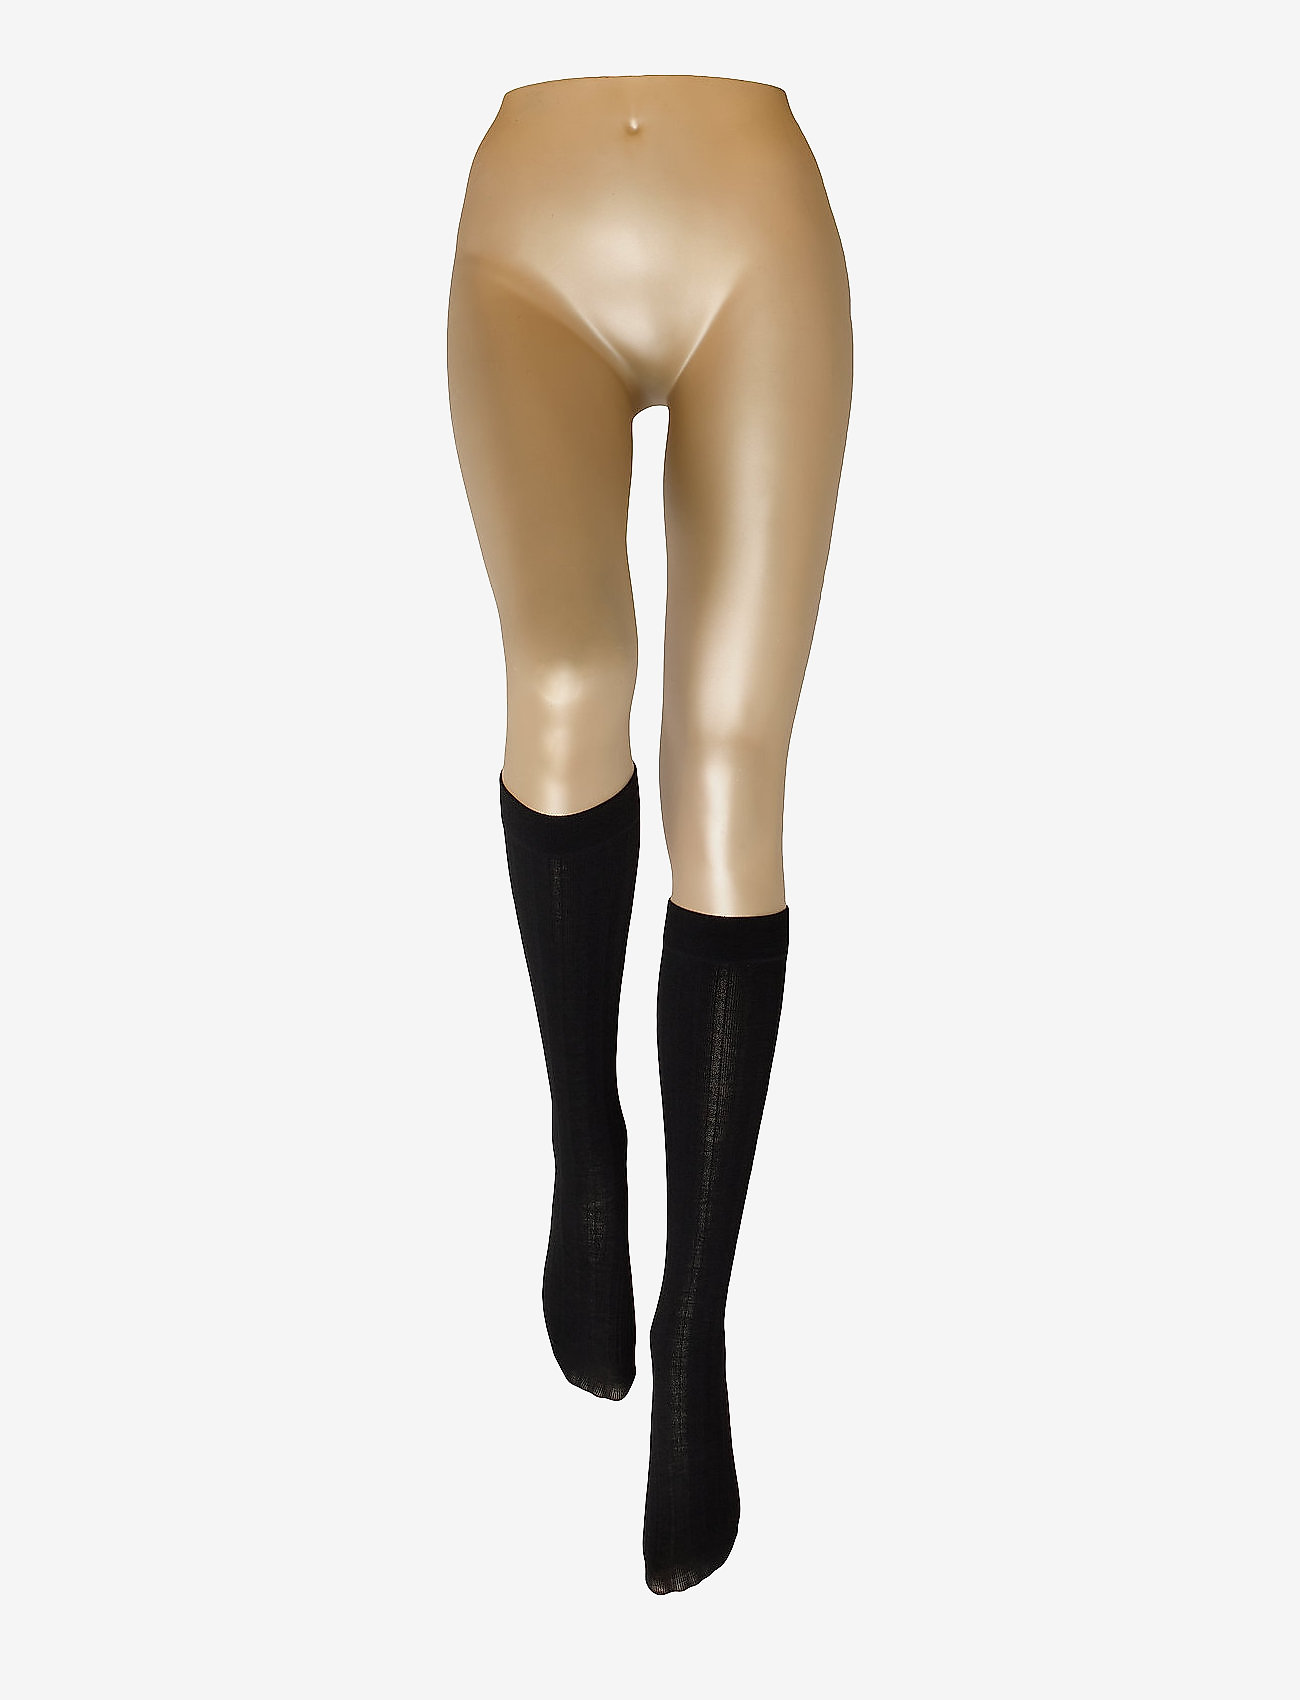 Swedish Stockings - Freja knee-high - kniestrümpfe - black - 1